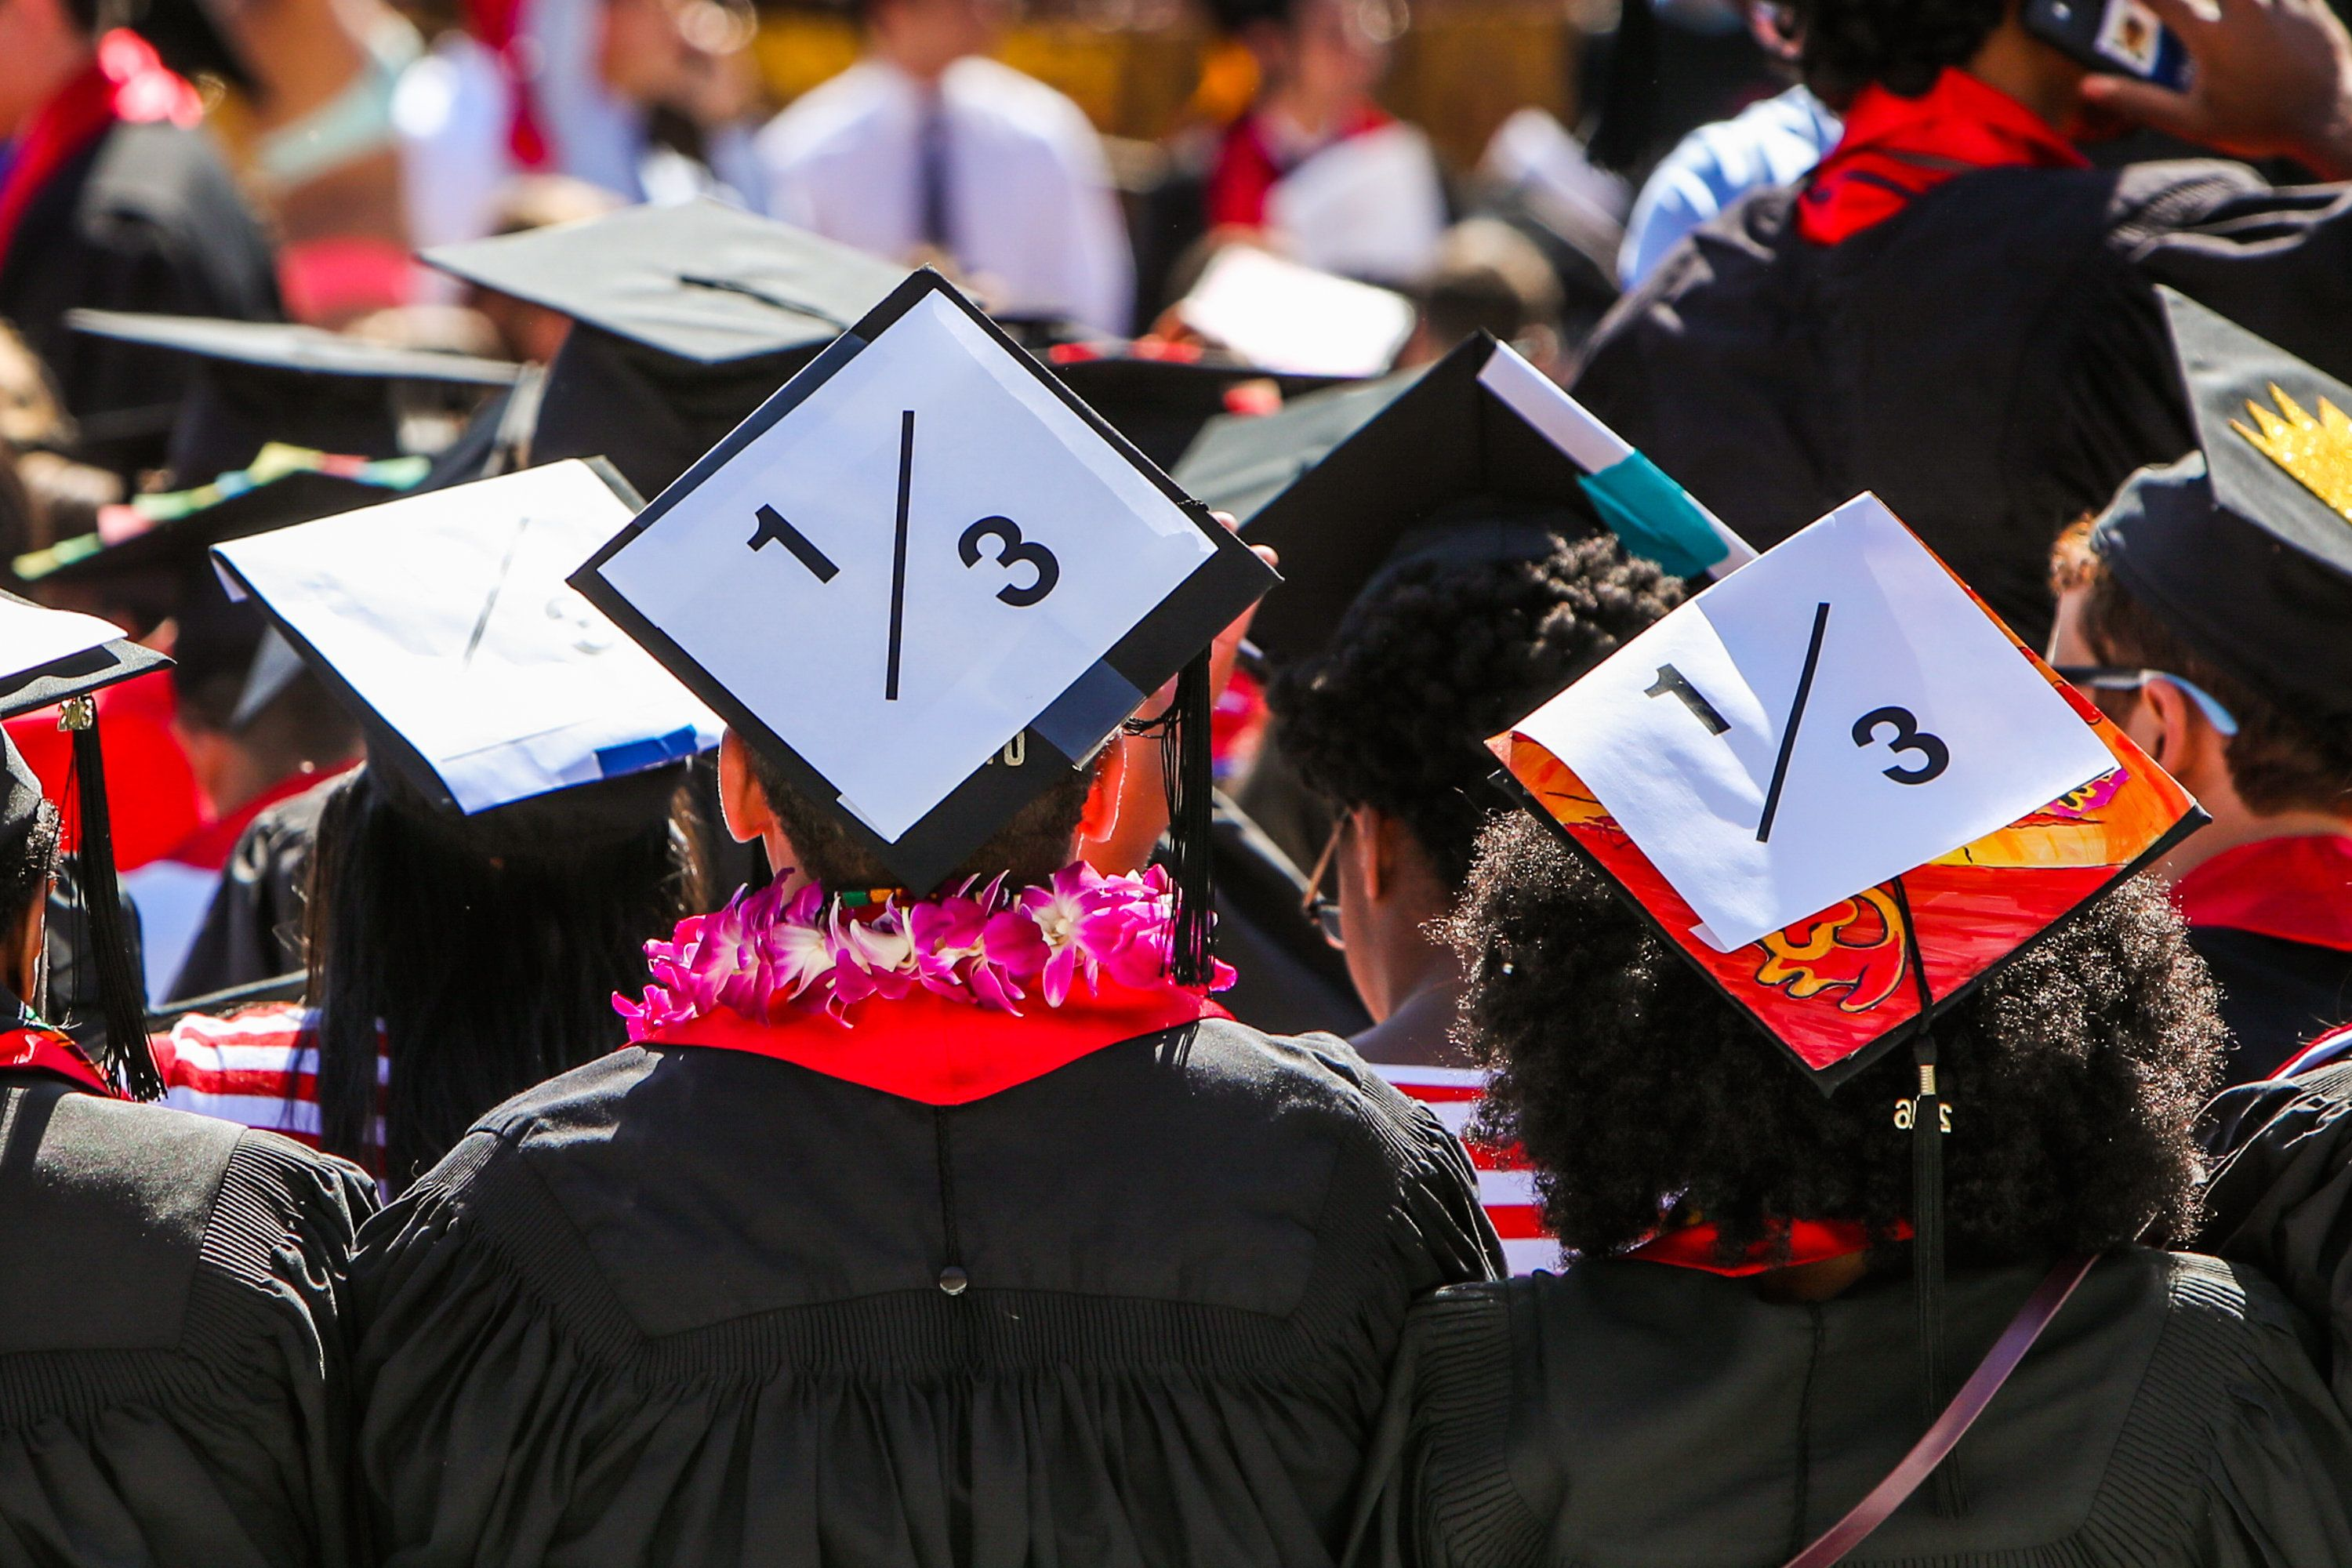 Stanford students wear a 1/3 sign on their caps to show solidarity for a Stanford rape victim during graduation ceremonies at